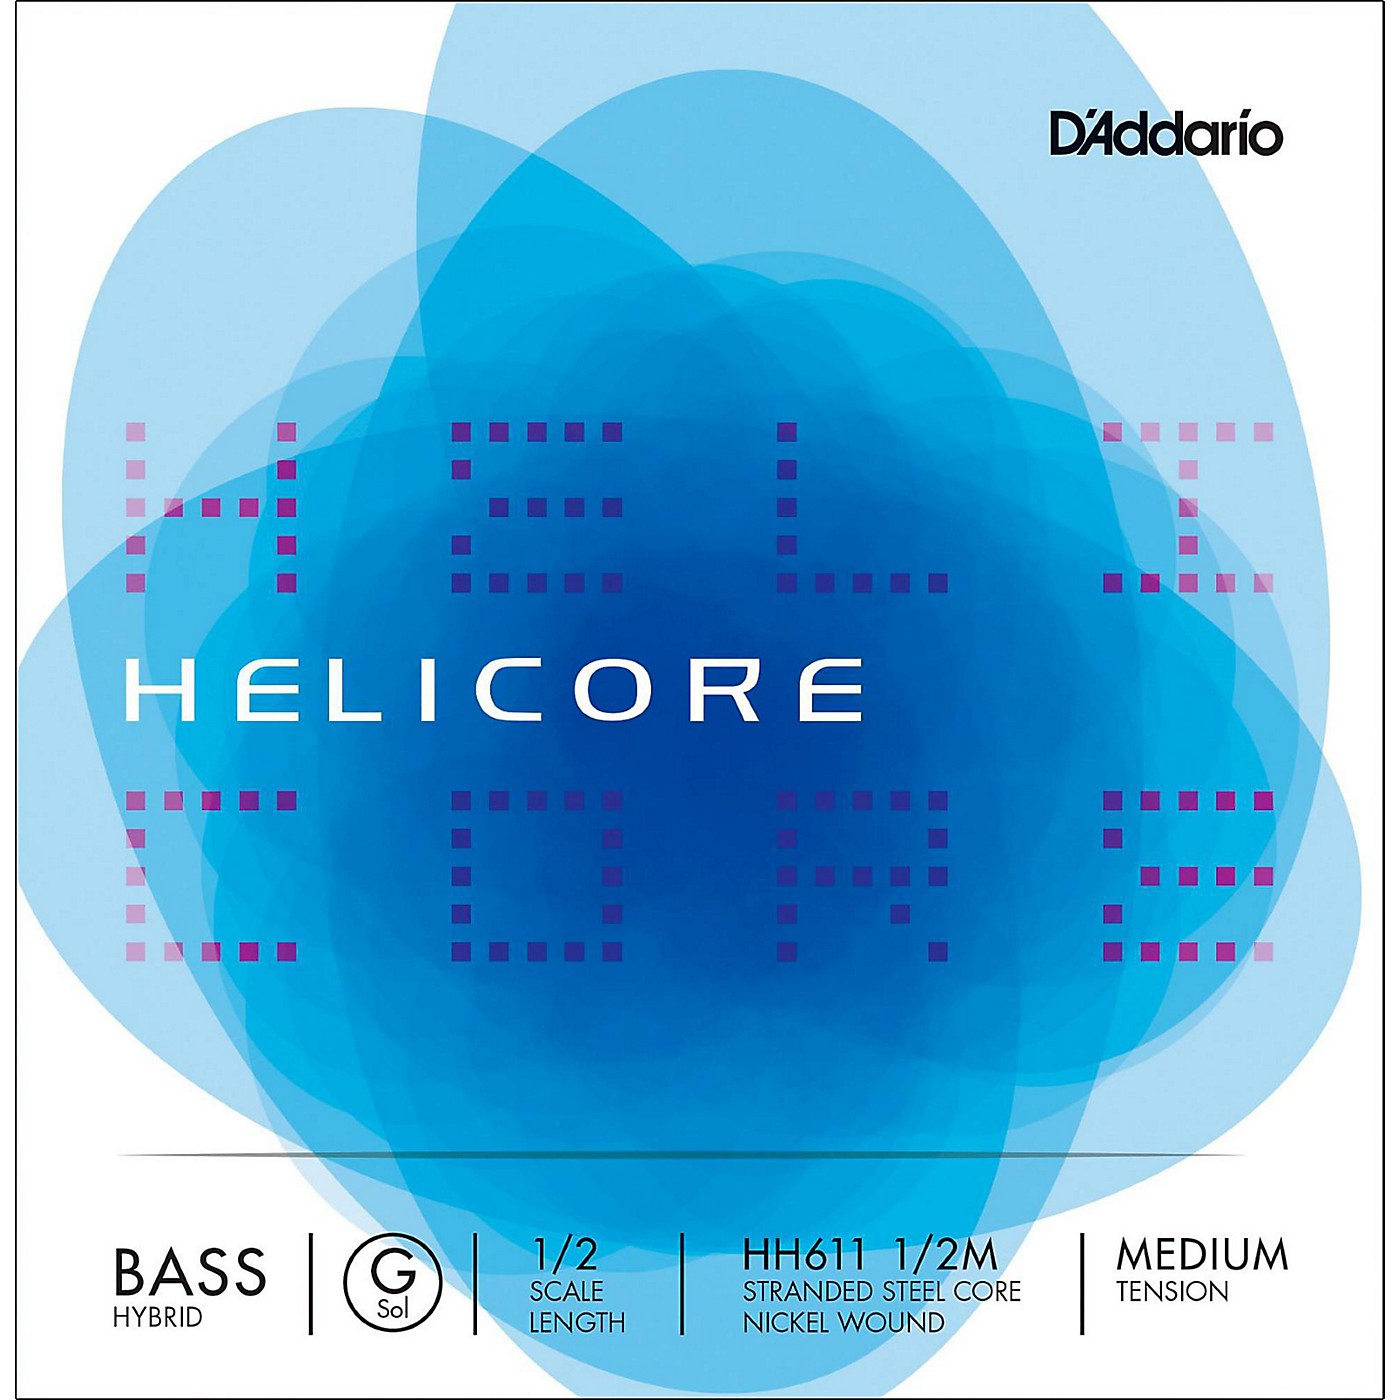 D'Addario Helicore Hybrid Series Double Bass G String thumbnail